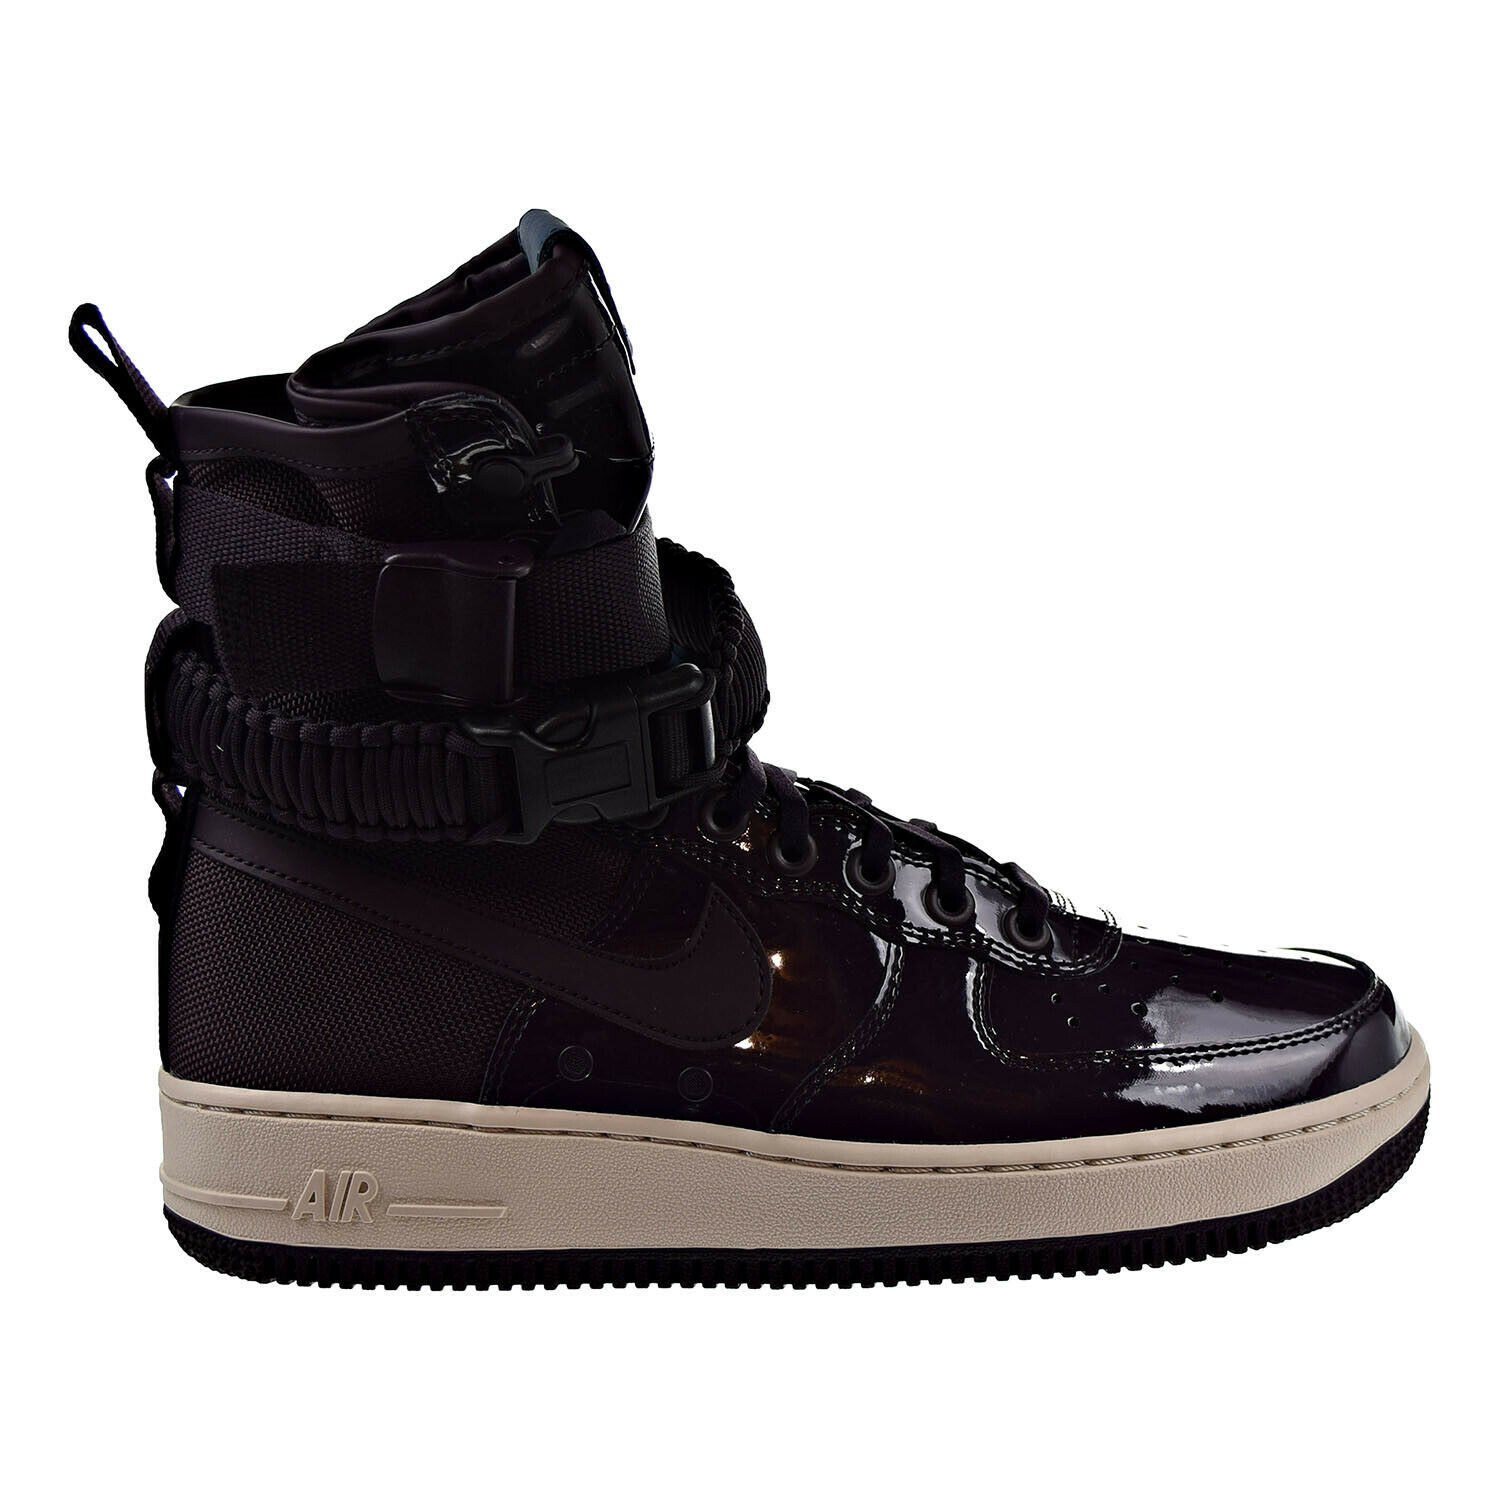 Primary image for Nike SF Air Force 1 SE Premium Women's Shoes Port Wine-Space Blue aj0963-600